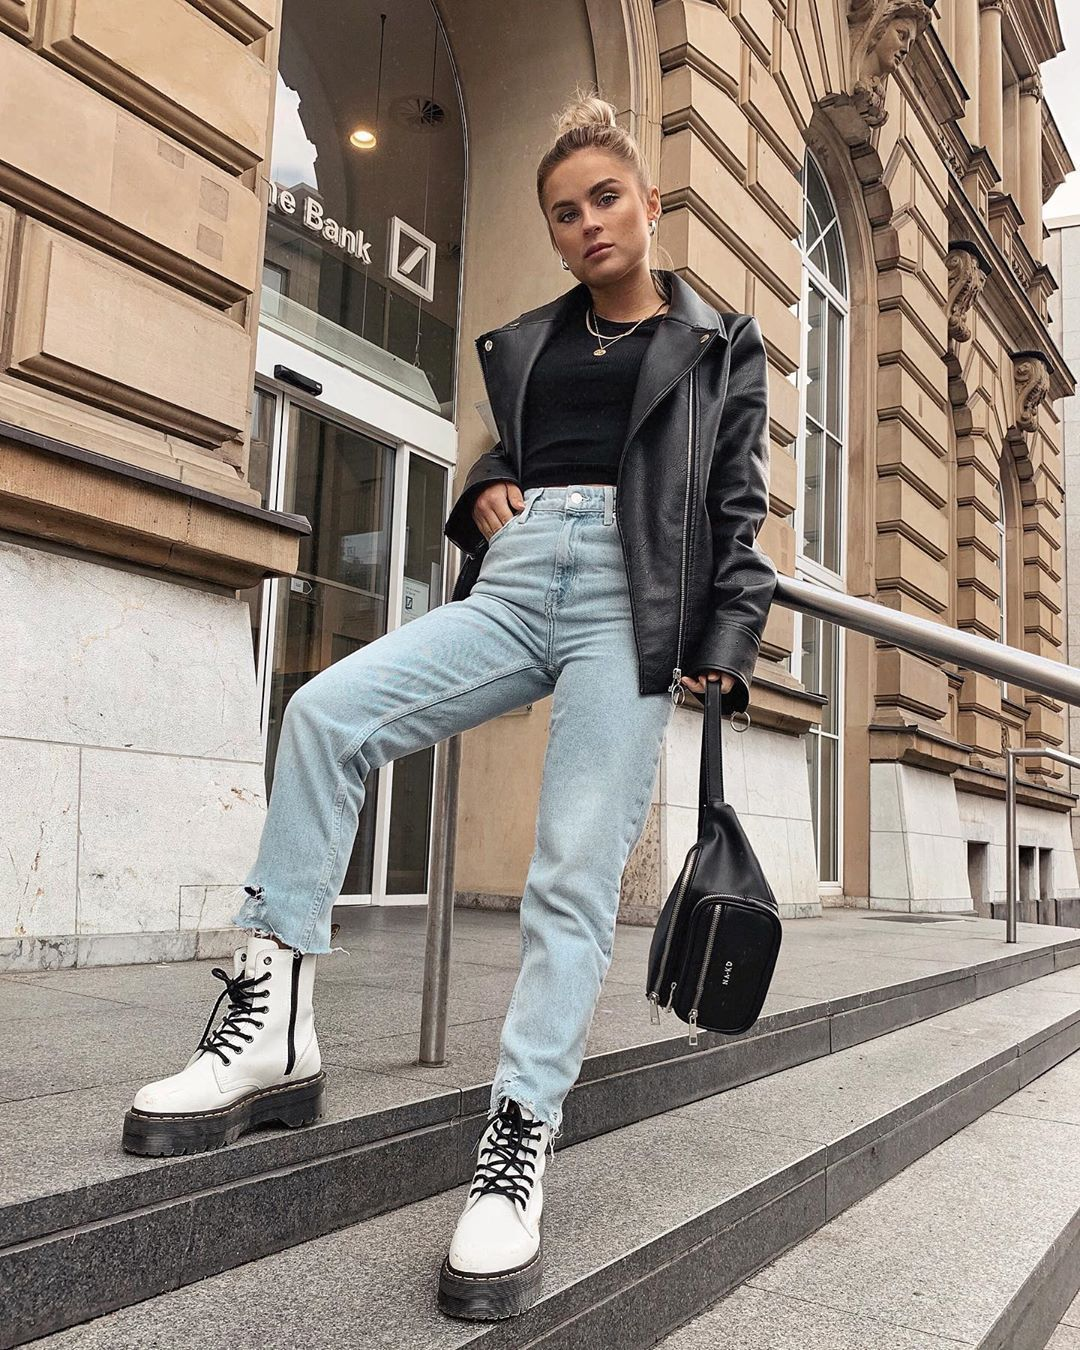 Romina Meier on Instagram Anzeige  life isnt perfect but your outfit can be  Shop online at nakdfashion and Save 15 with code Romina15  happyyy shopping anzeige